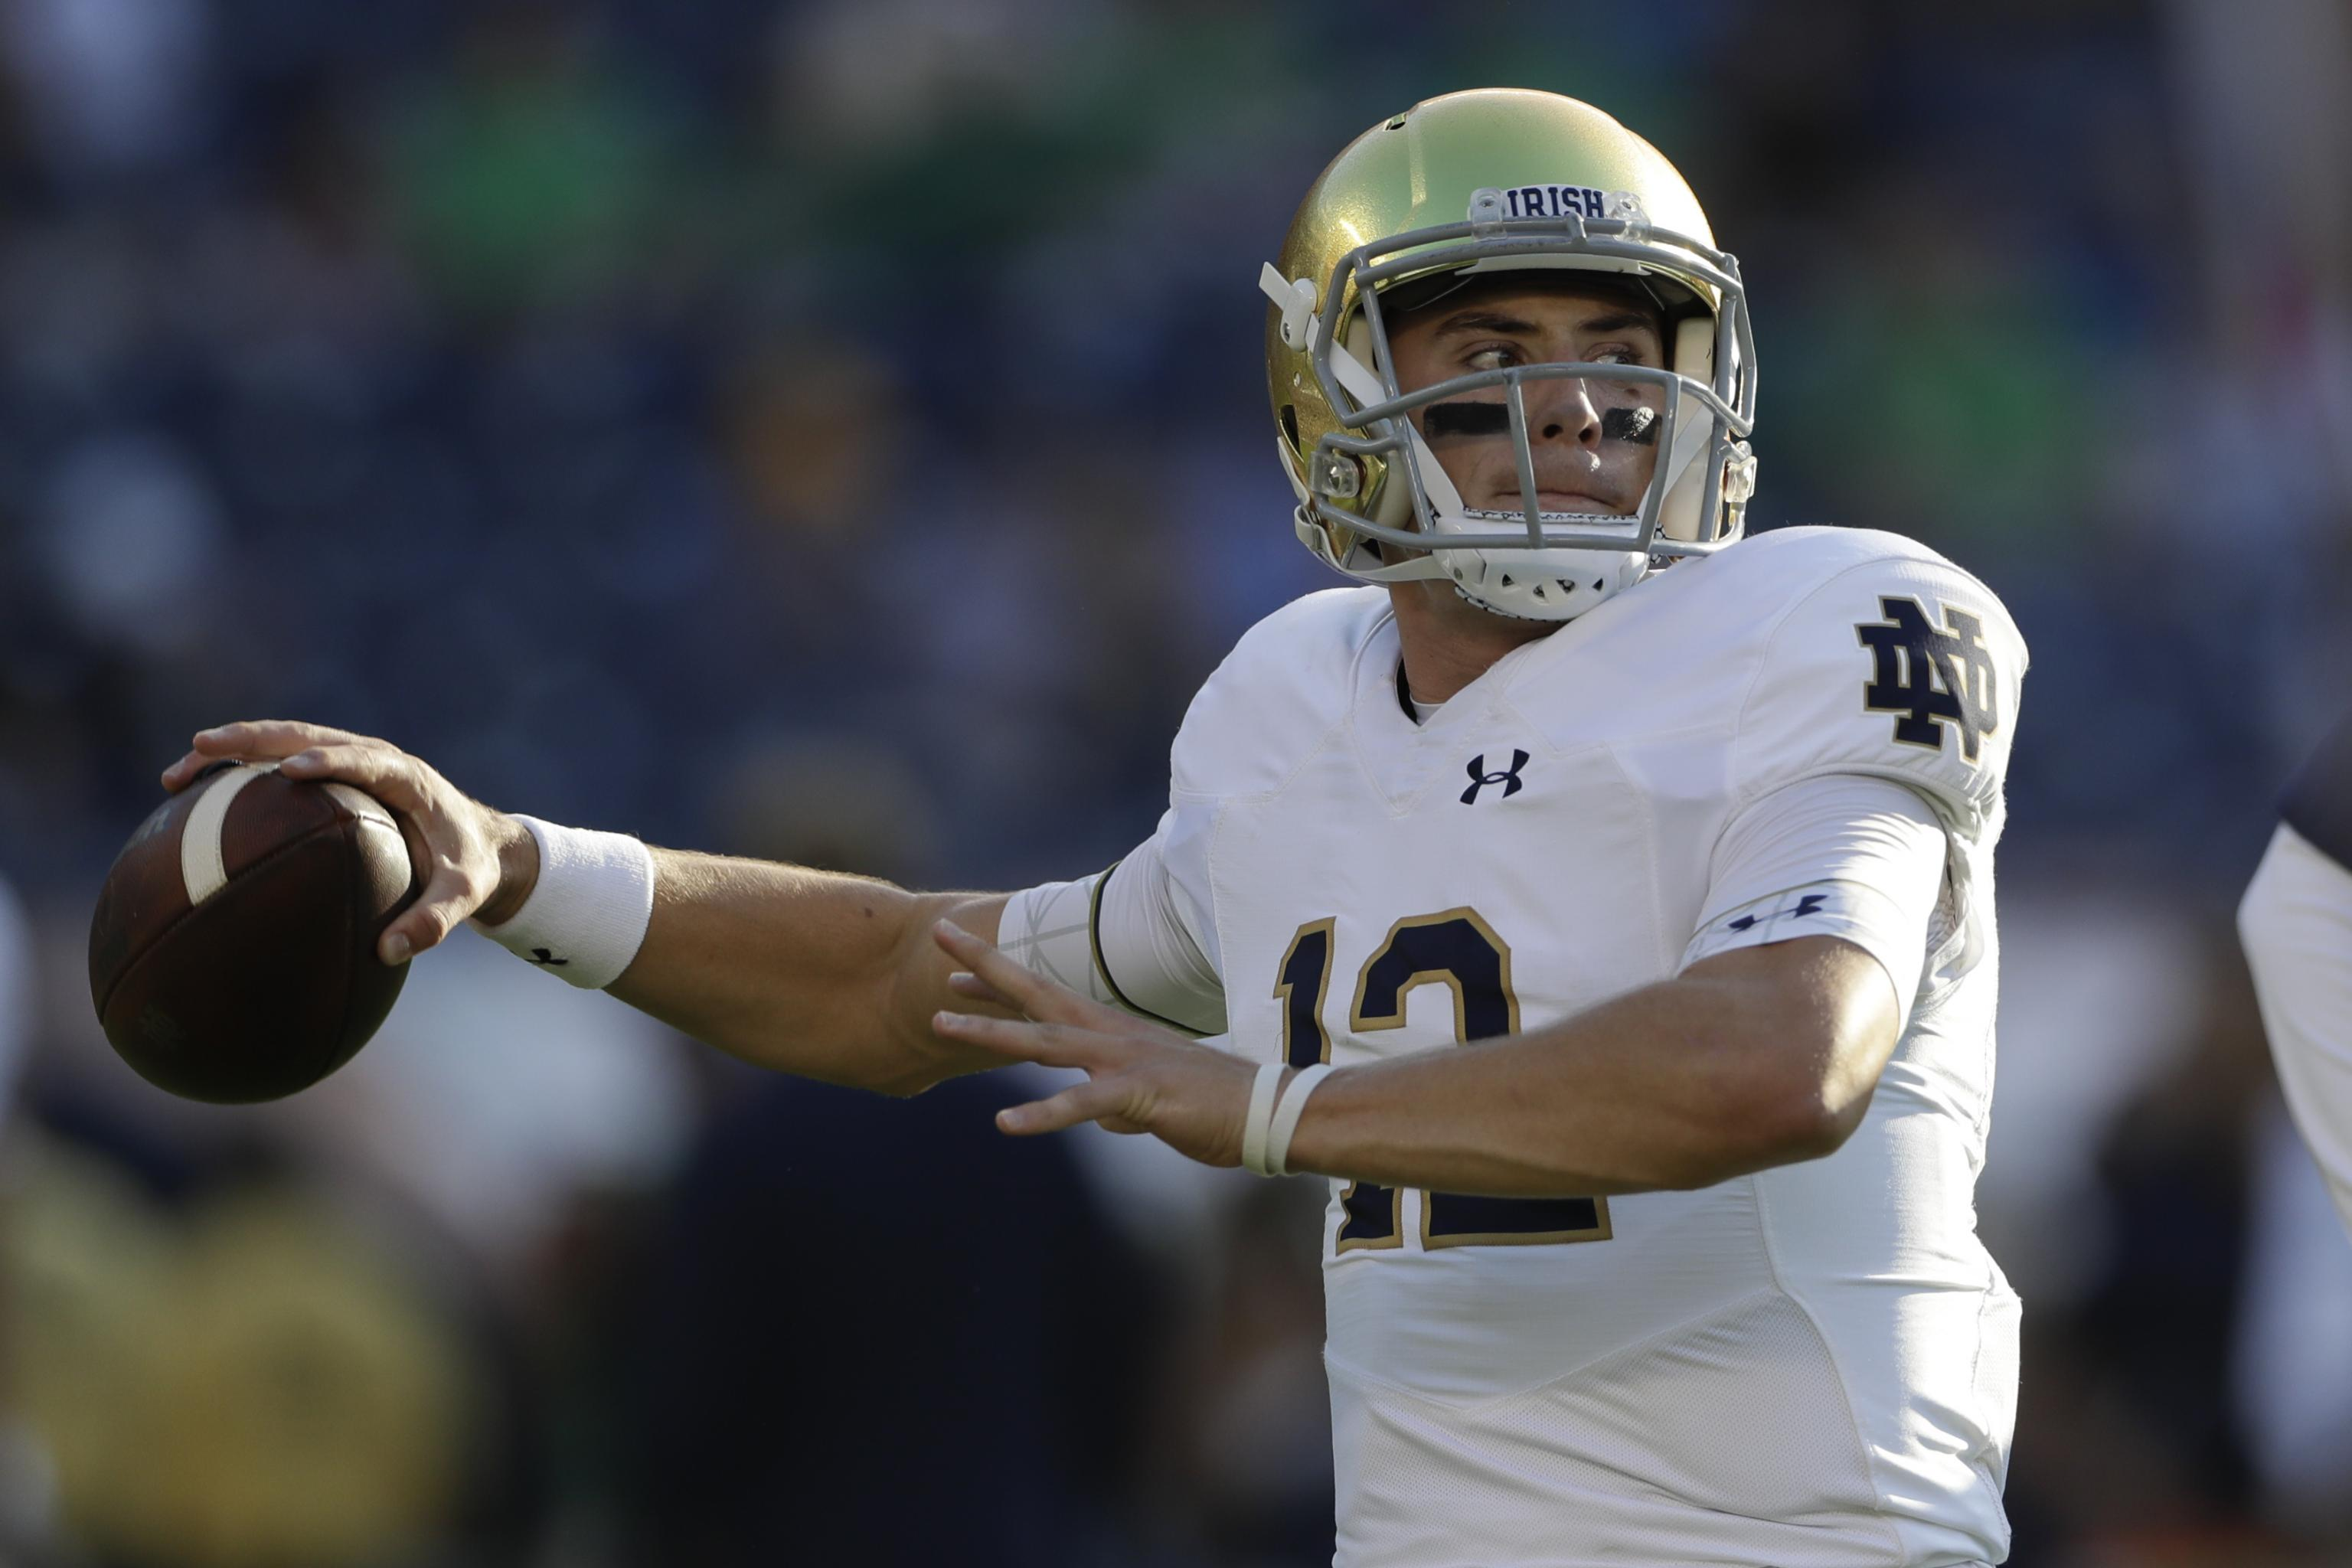 Notre-dame vs florida state 2021 betting odds target accepts bitcoins